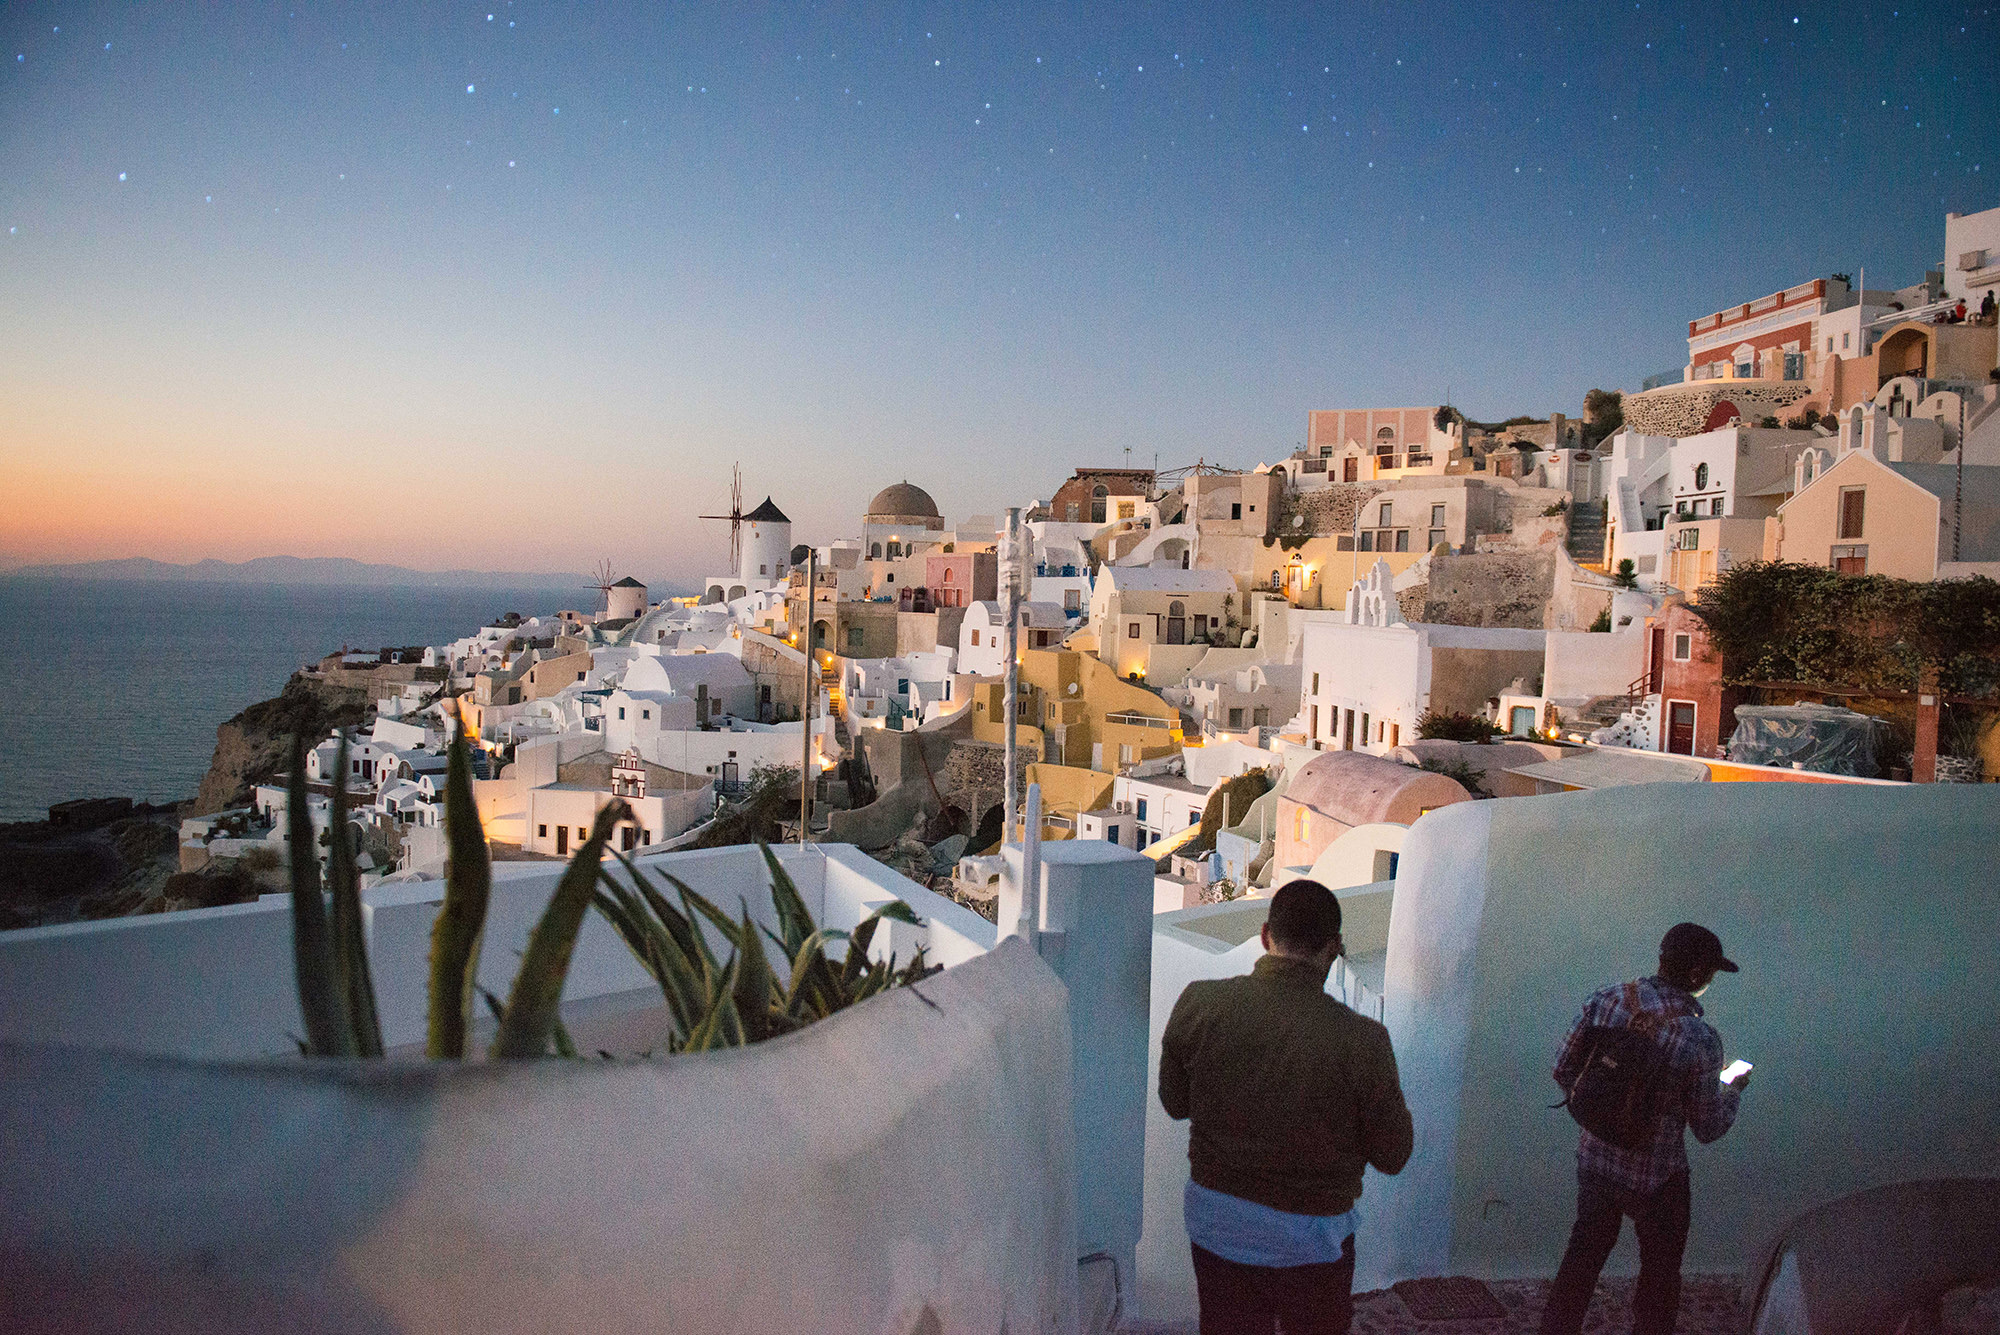 Night skies over a Greek village on a cliff side next to the sea